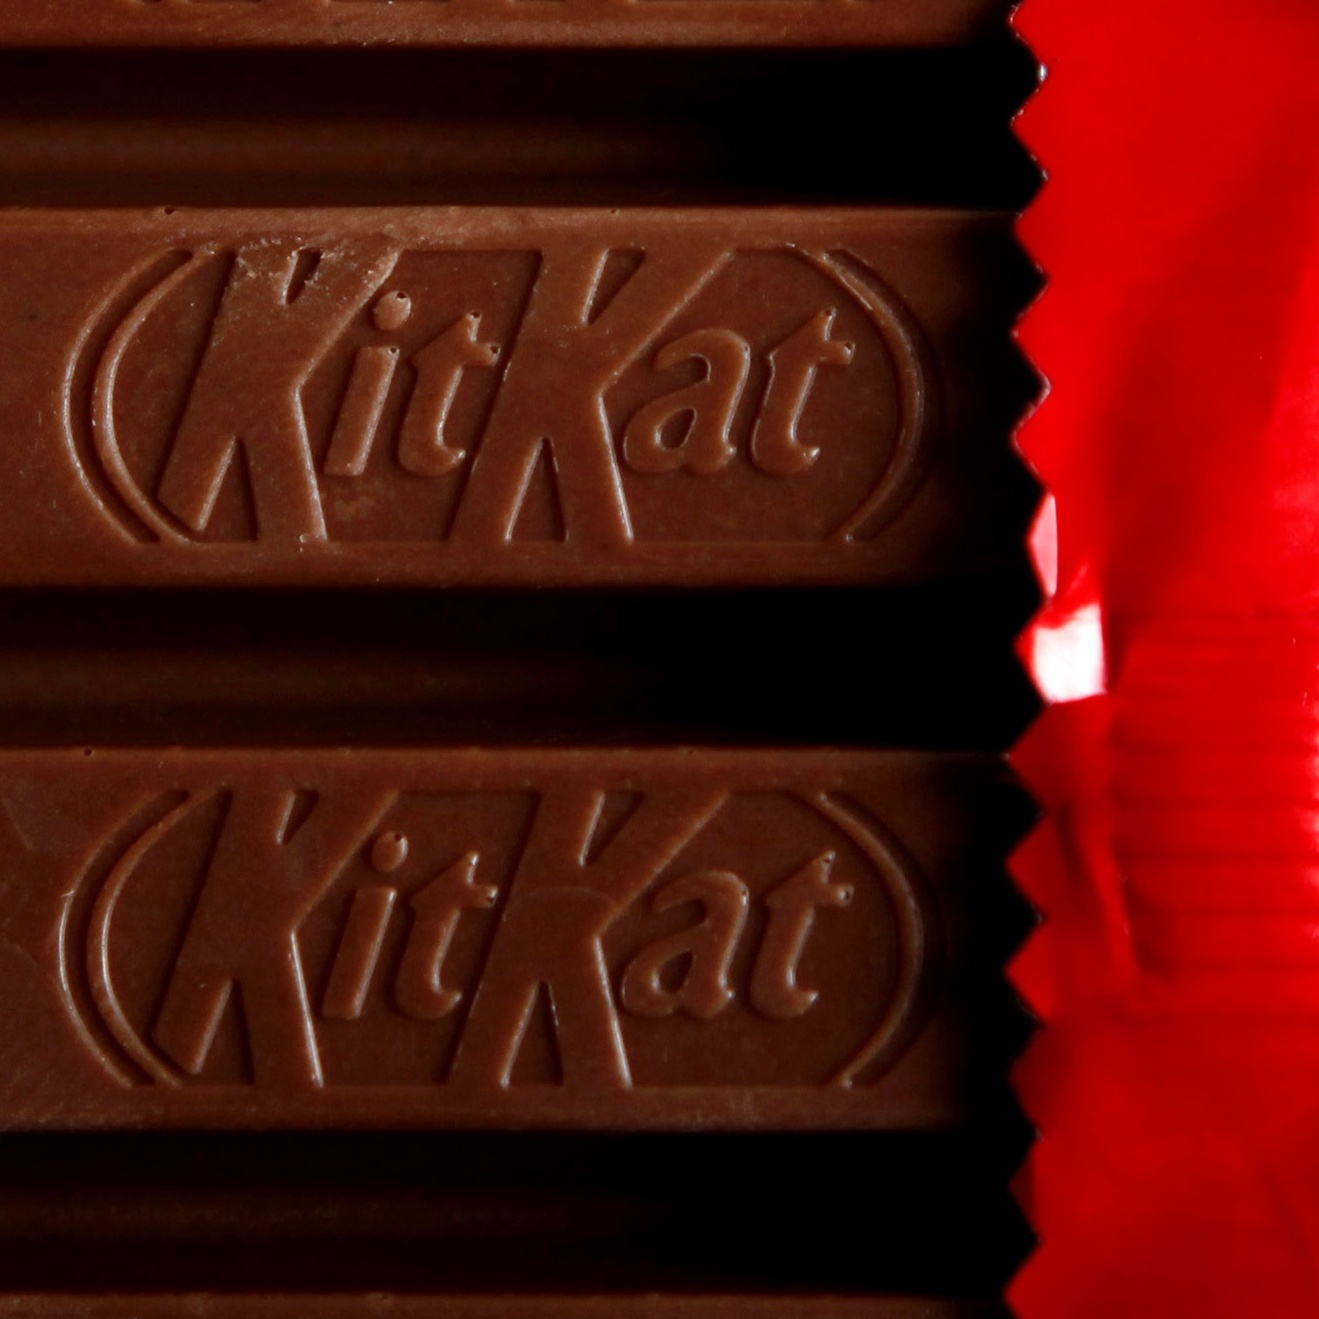 Hershey Gives the Biggest of Breaks to Victim of Stolen Kit Kat